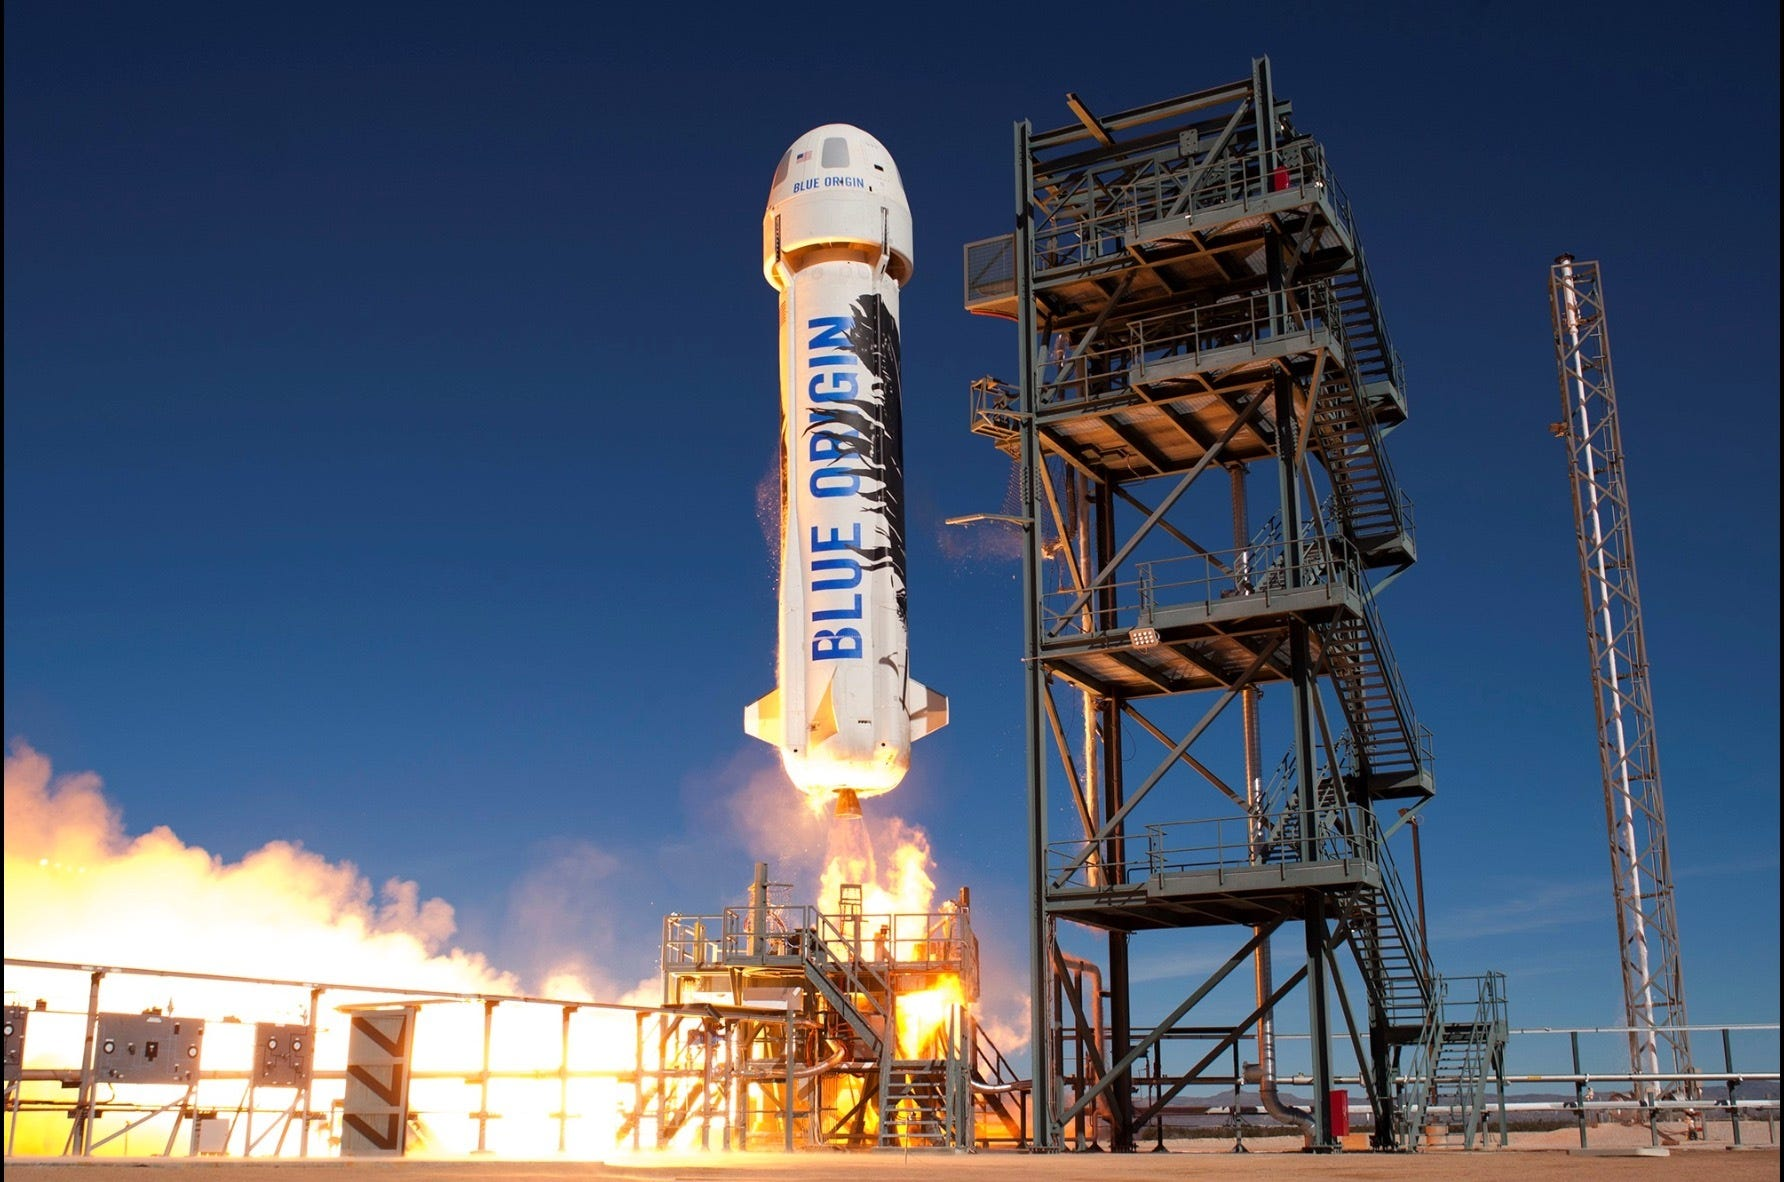 'Alexa, take me to the moon.' Jeff Bezos' Blue Origin mission will be first commercial moon landing